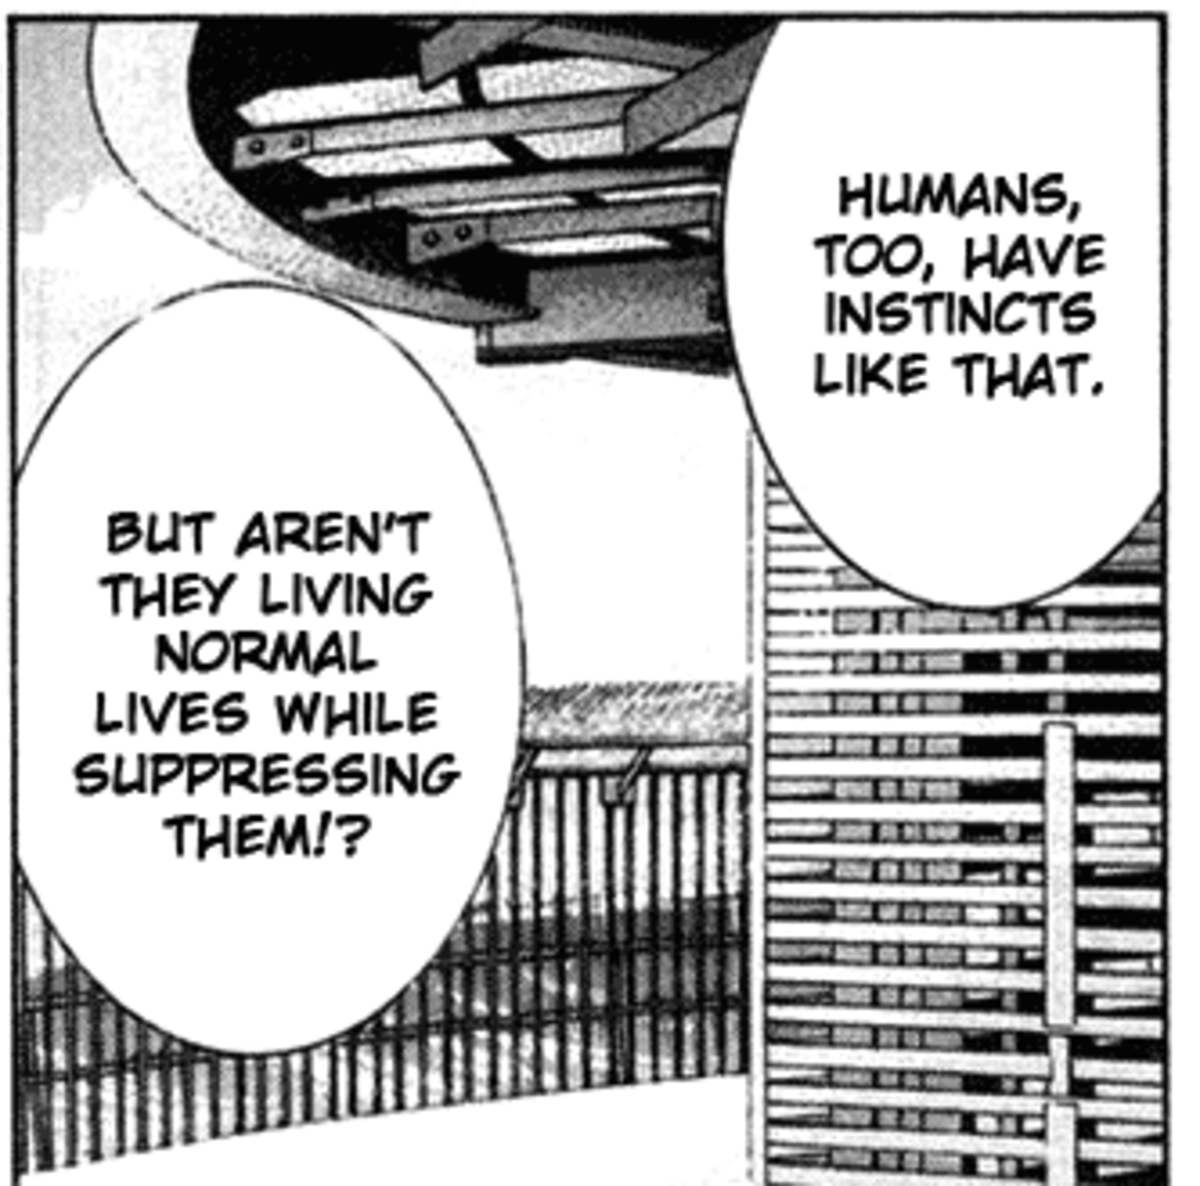 Kouta's monologue from the previous image continues, revealing the truth about human nature.